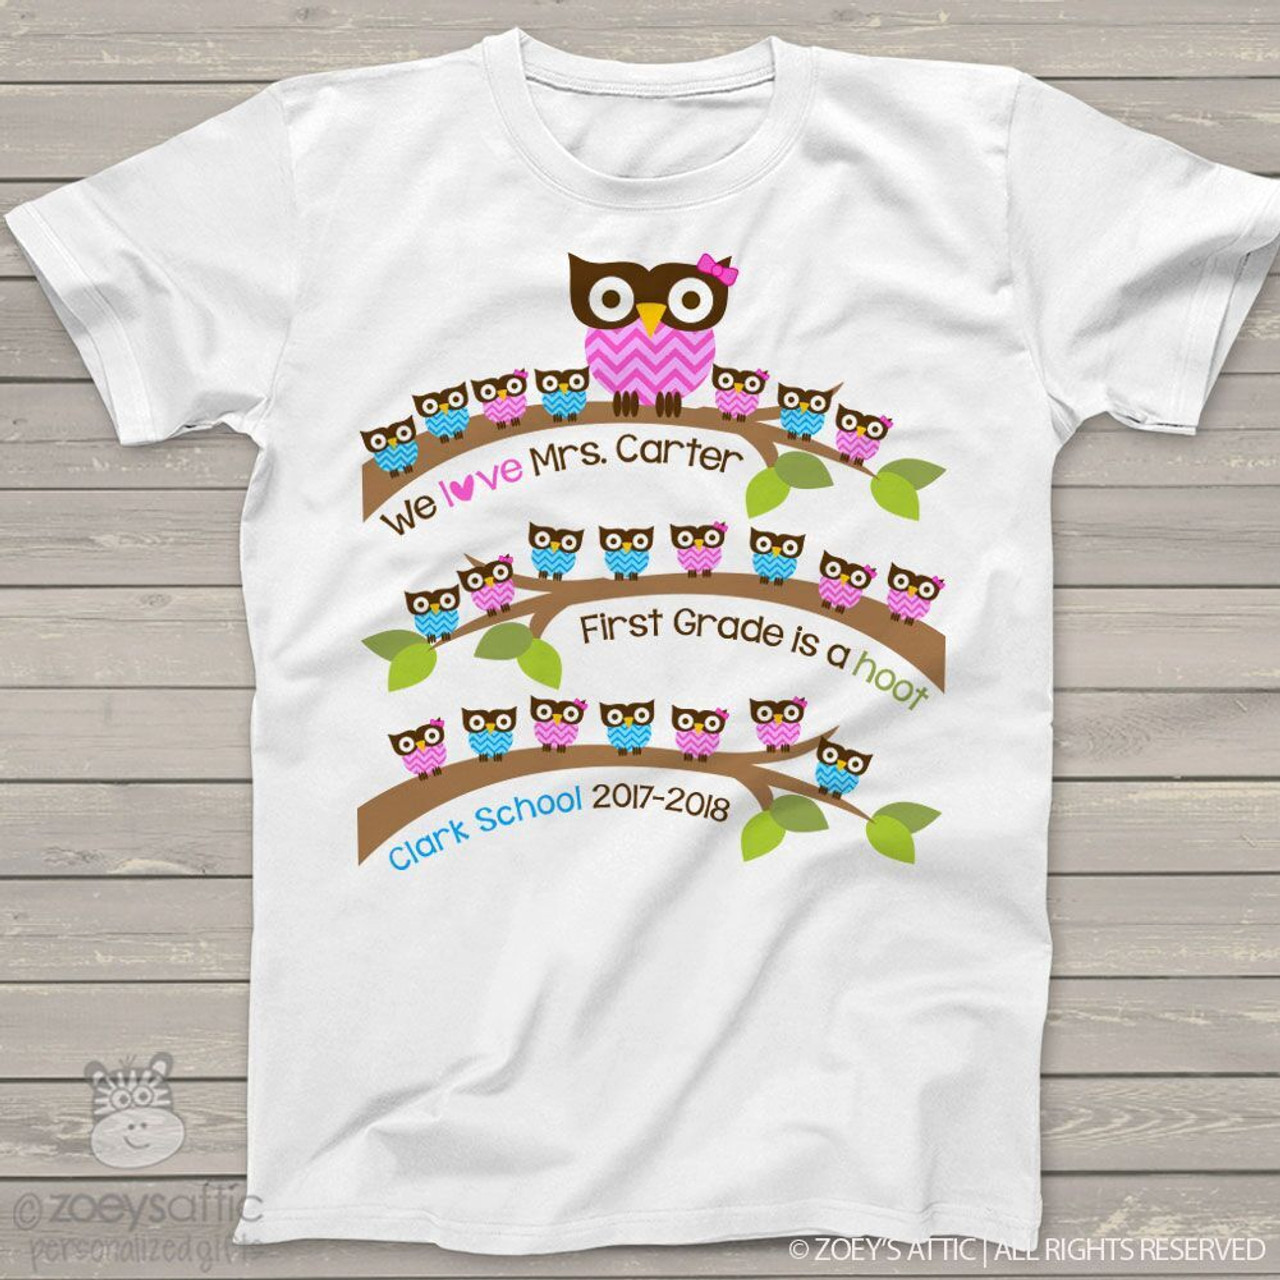 814223d723073 Teacher shirt gift from students school hoot owl personalized Tshirt